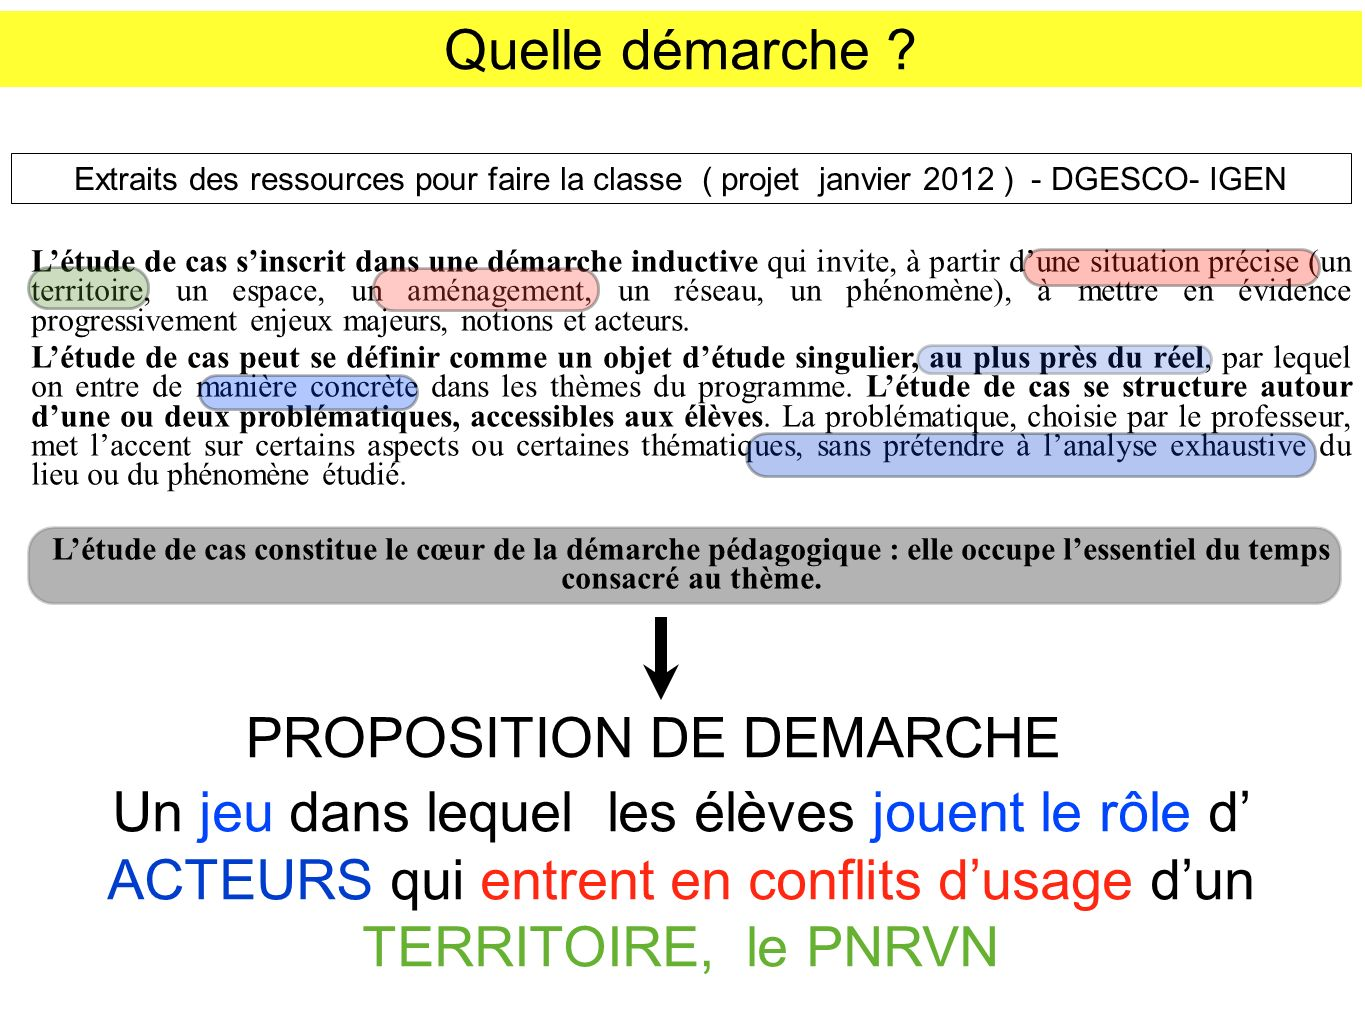 PROPOSITION DE DEMARCHE